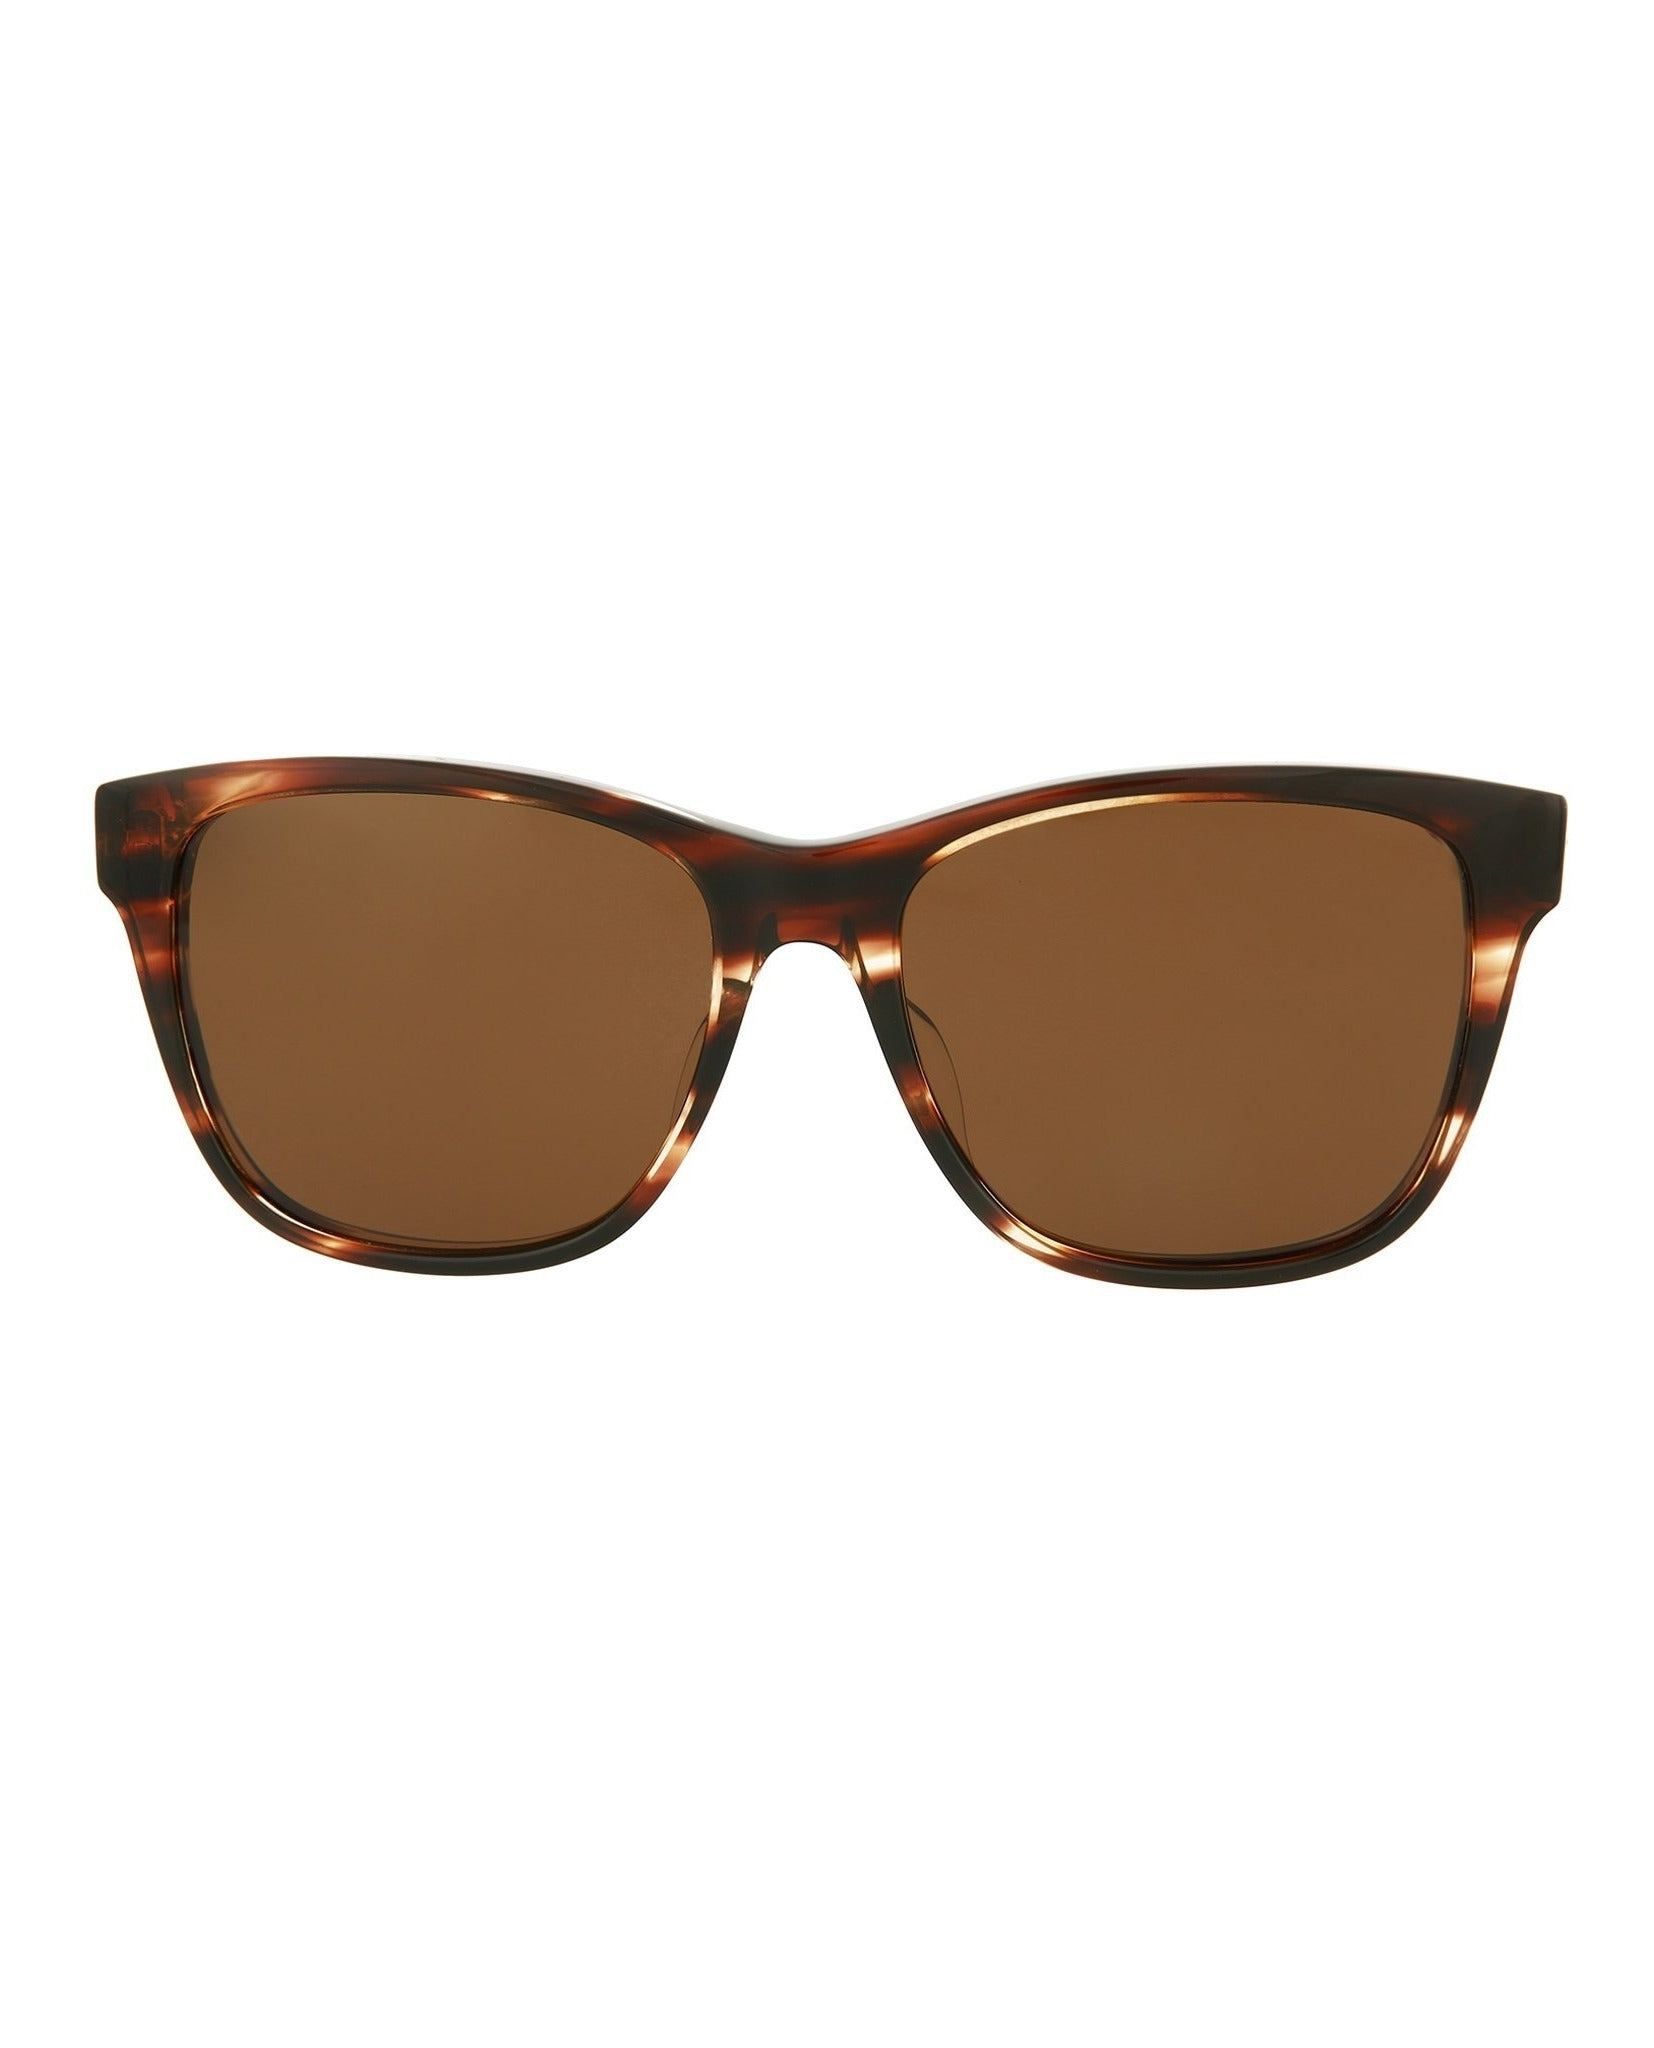 Bottega Veneta Square/Rectangle Sunglasses